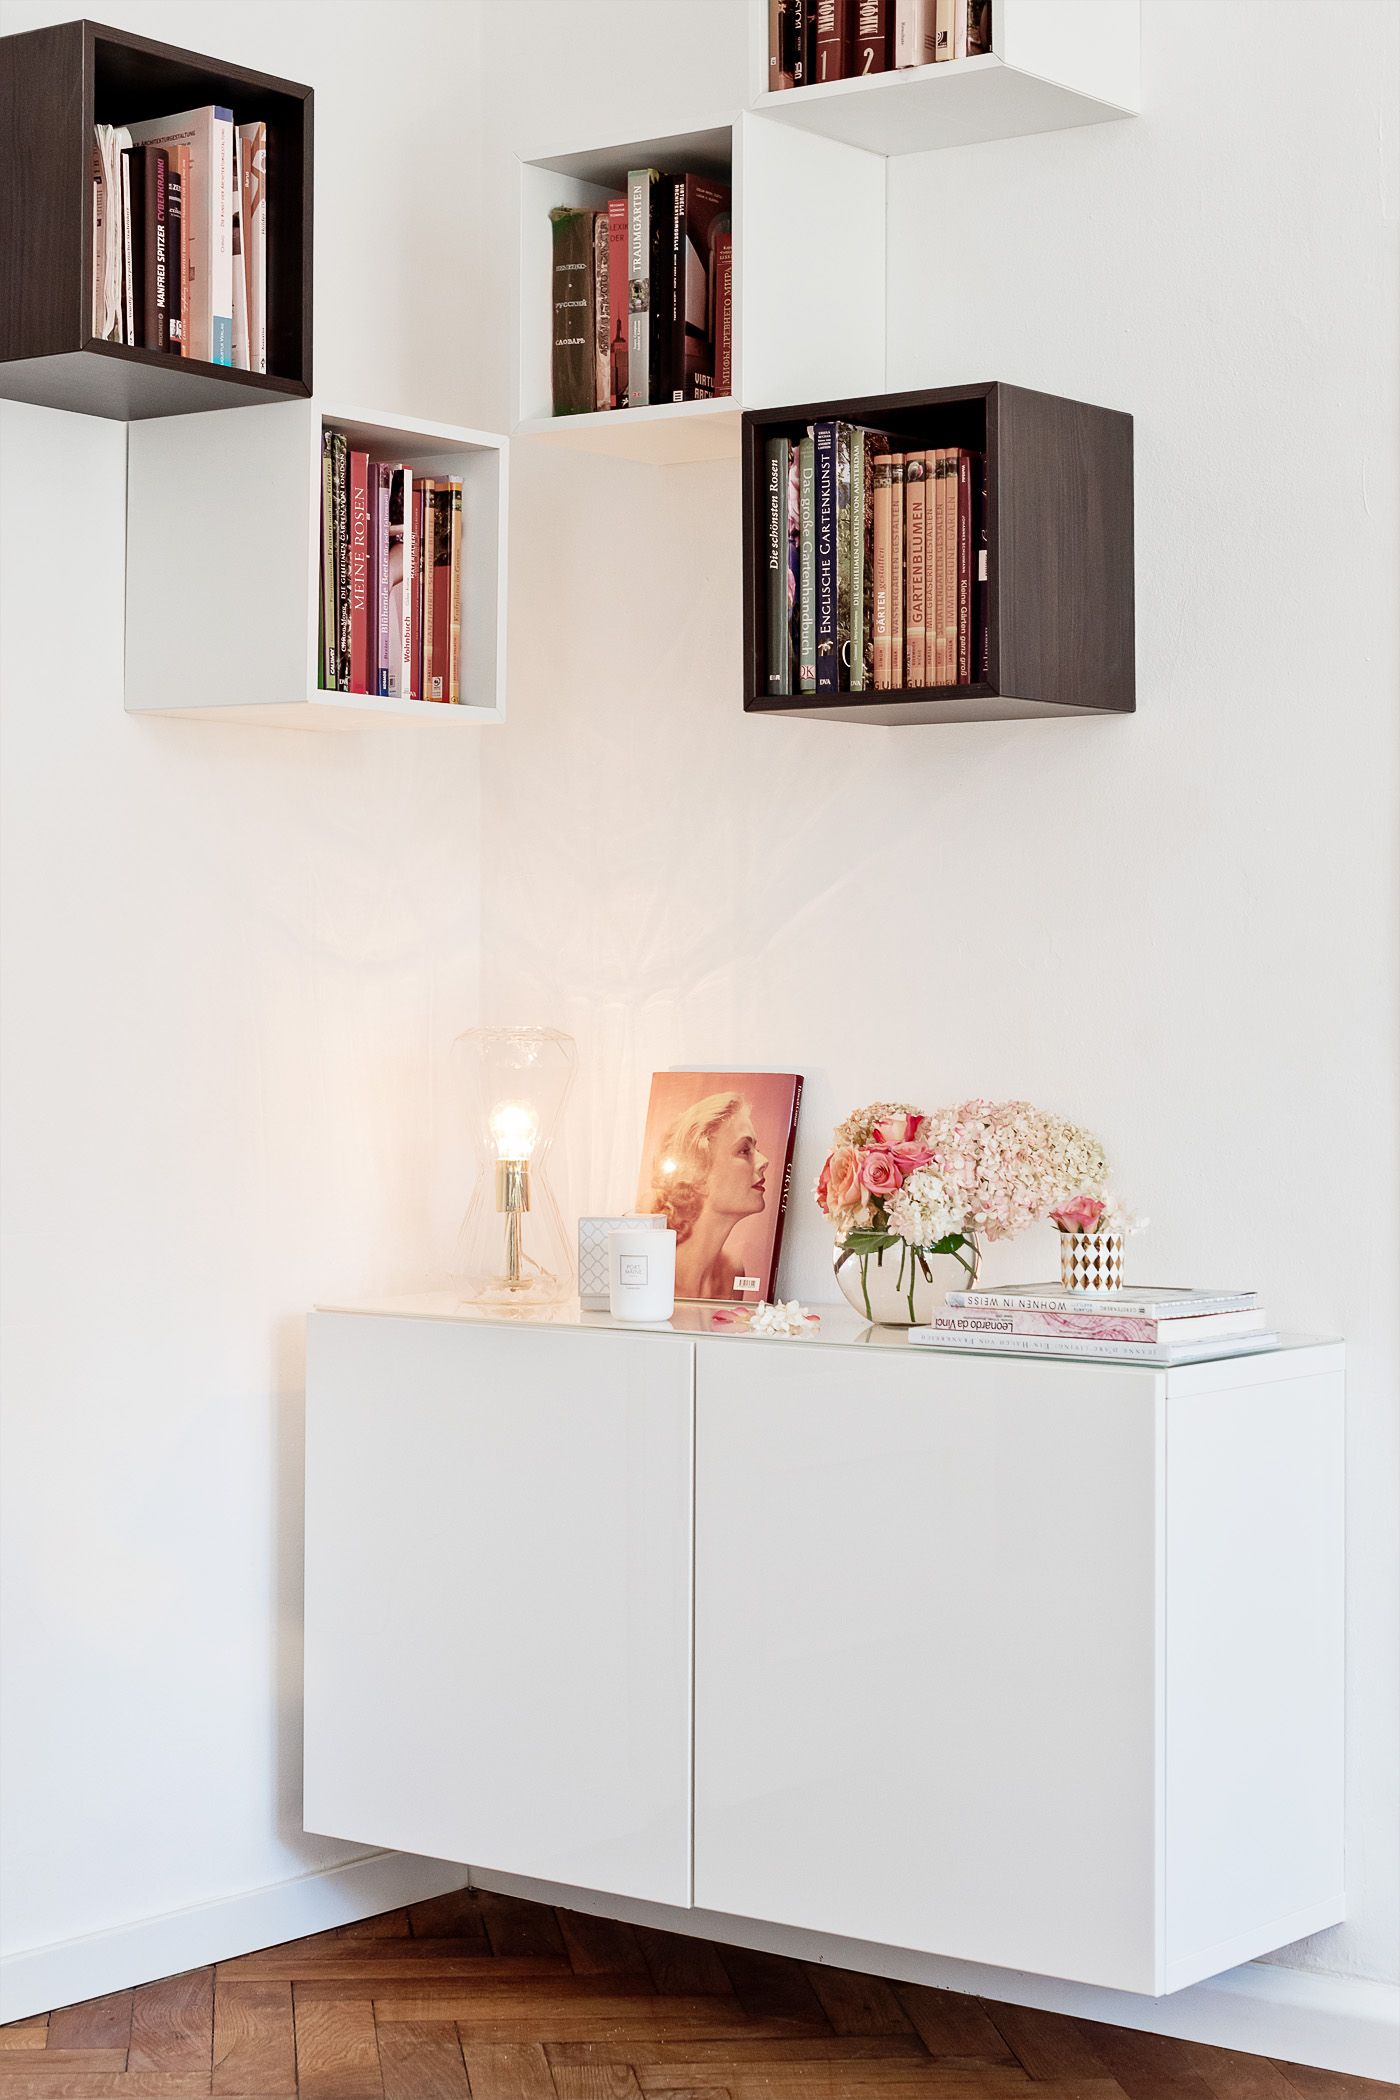 Bilder Wohnzimmer Ikea Ikea Valje Wandregal Ikea Hacks In 2019 Ikea Bedroom Ikea